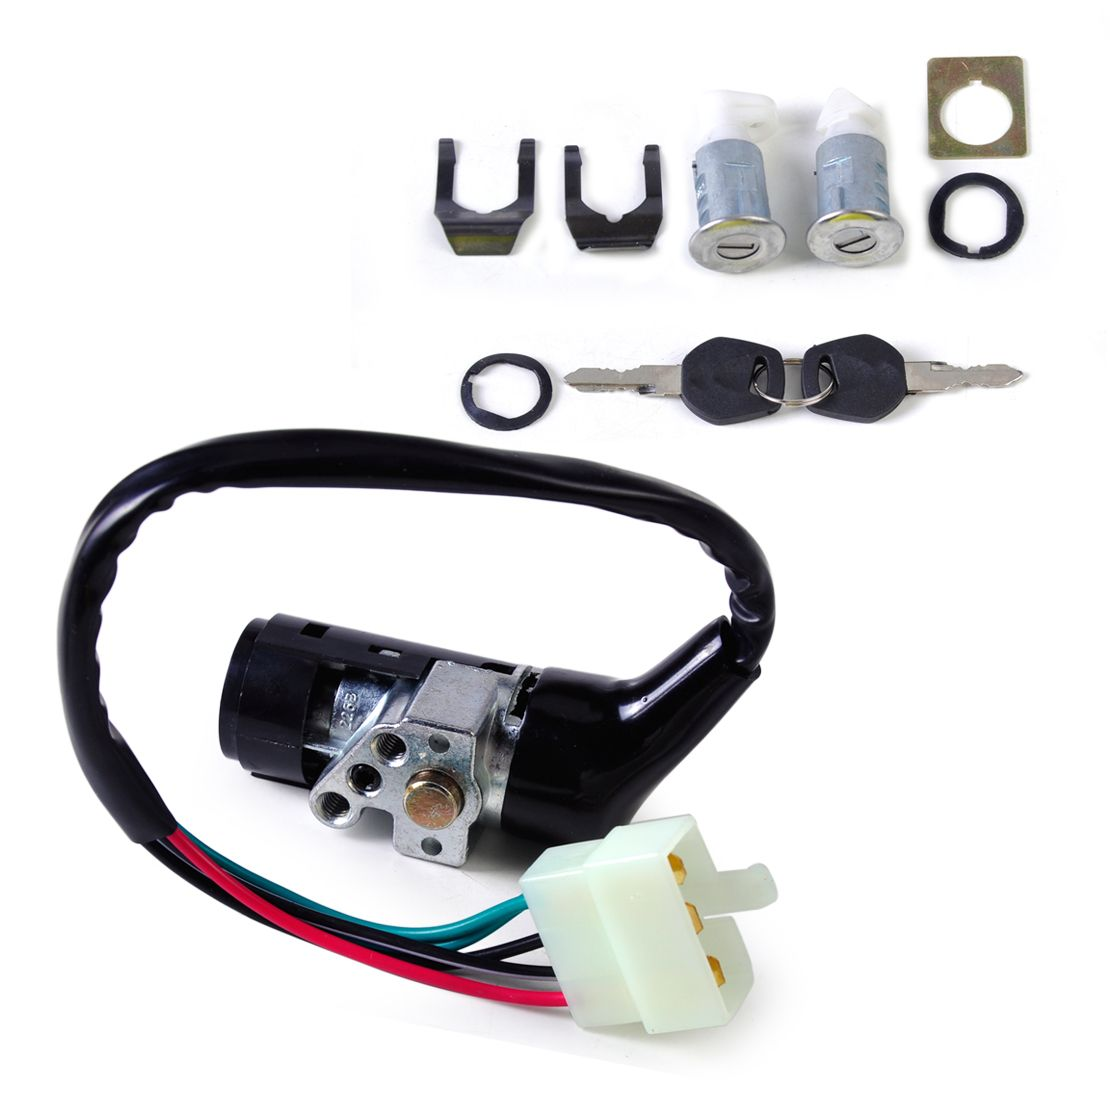 DWCX Motor Ignition Switch 5 Wire 2 Keys Lock Toolbox Lock Set for Chinese Scooter GY6 50cc 125cc 150cc 250cc ATV Scooters Moped